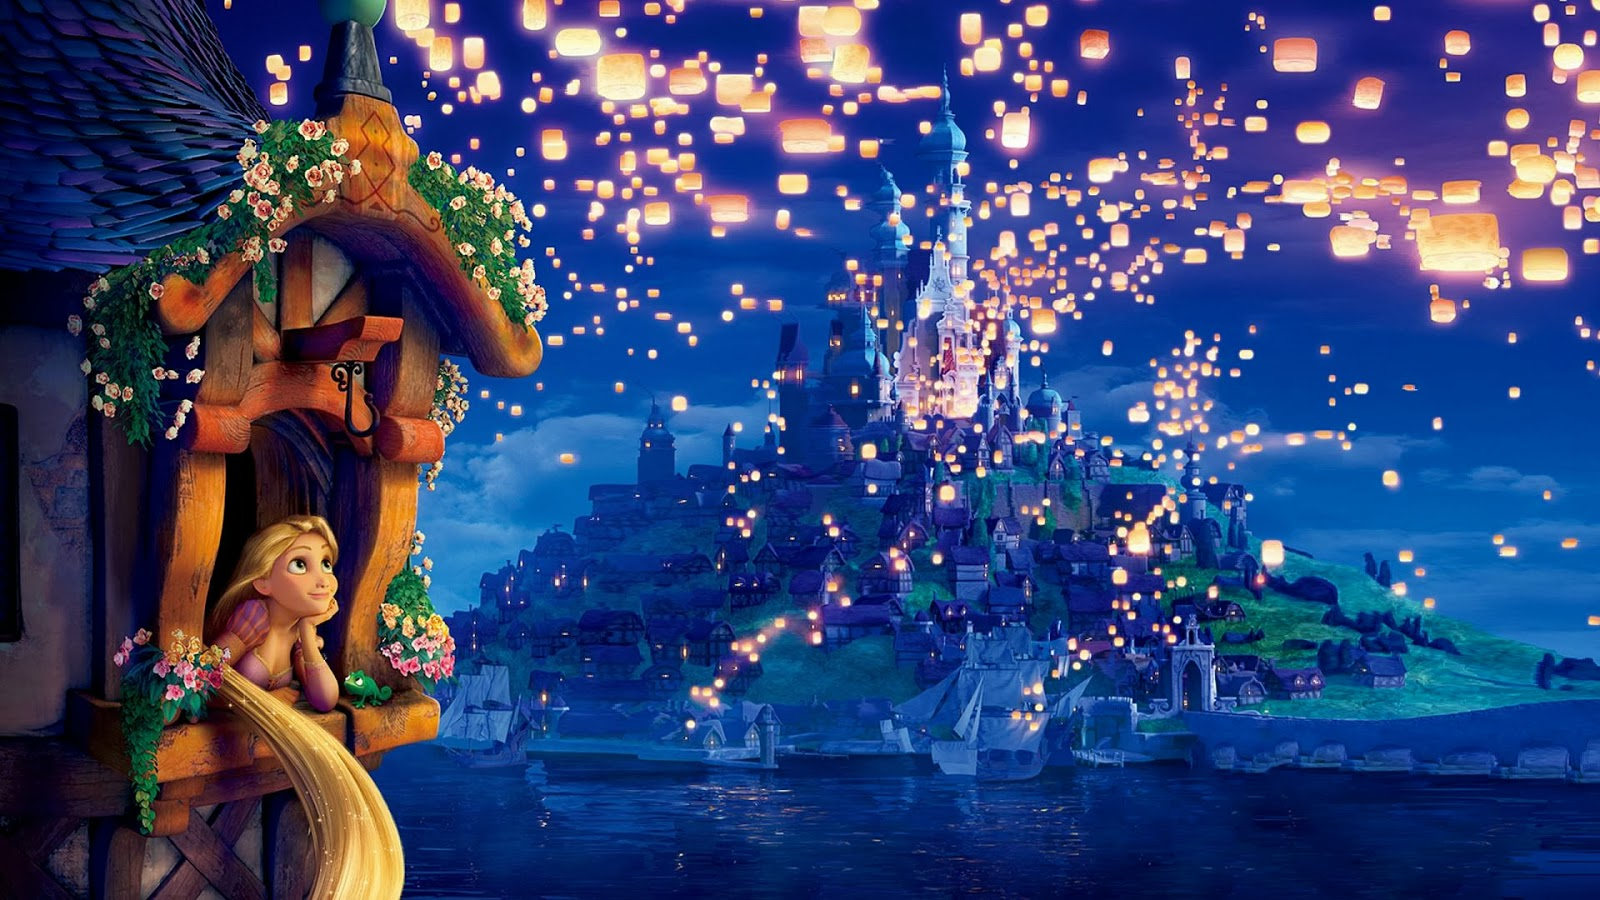 Download Disney Movies Wallpapers Free | Kids Online World ...